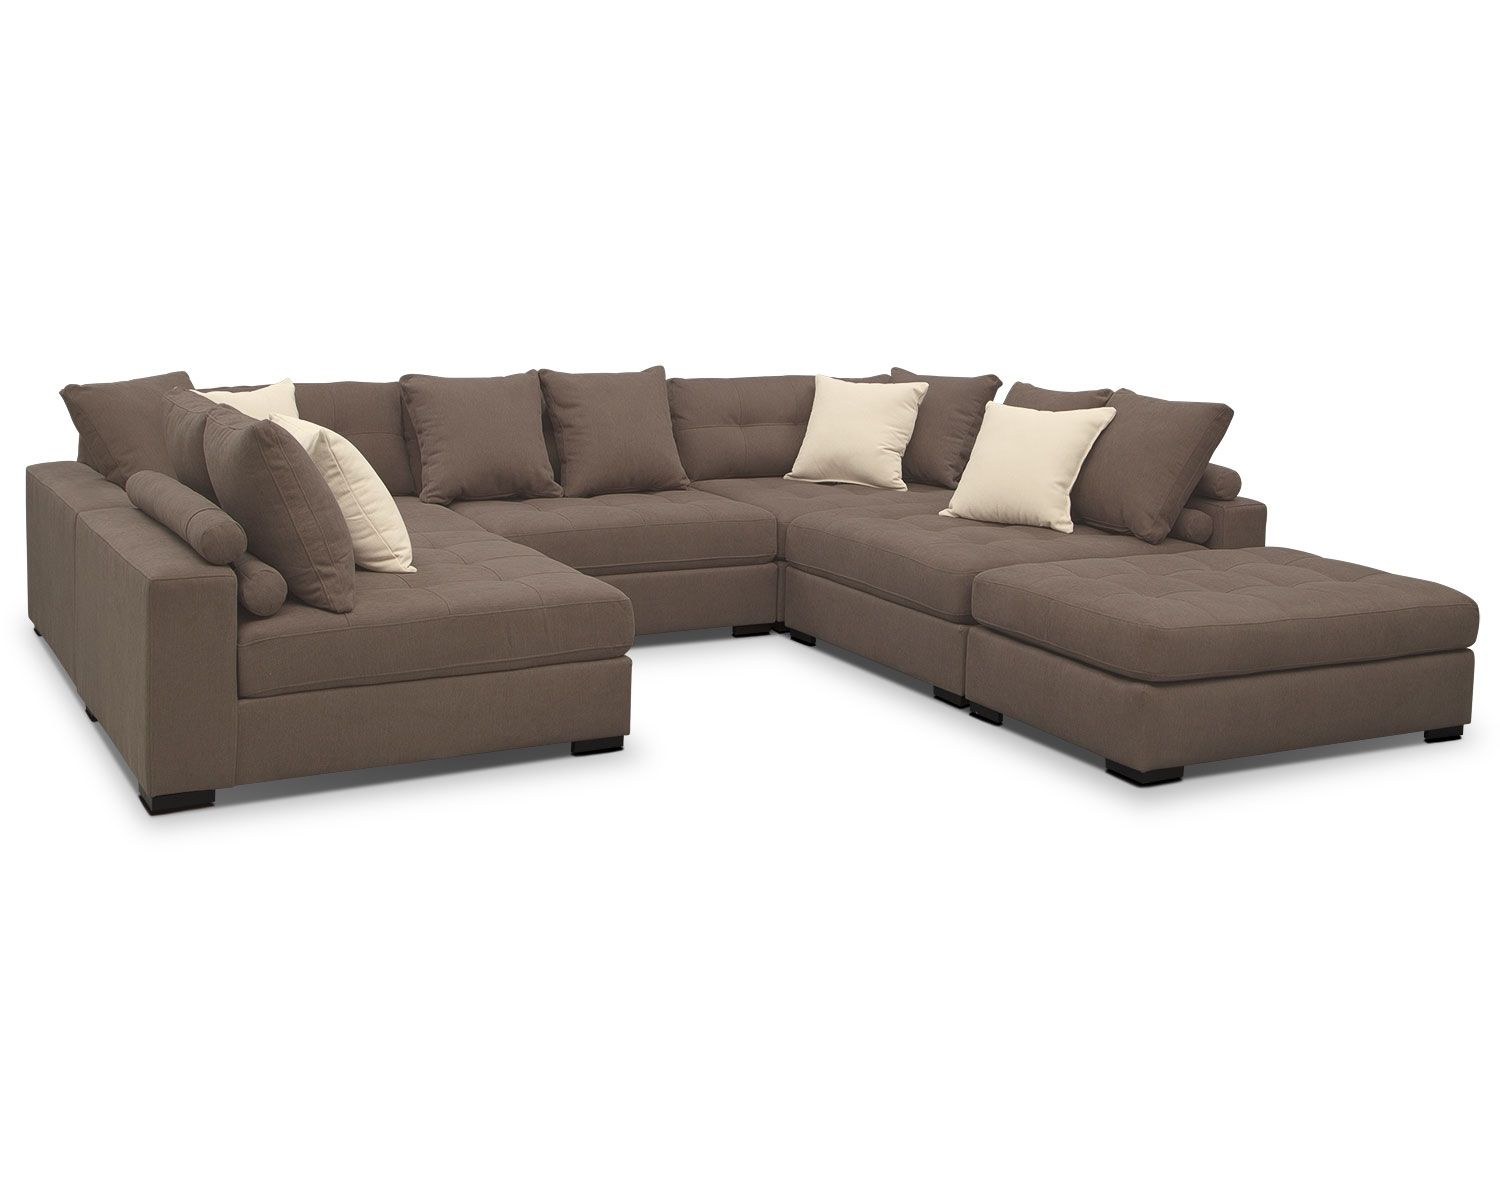 value couch the collection sectional product furniture couches smoke collections brando city room and living